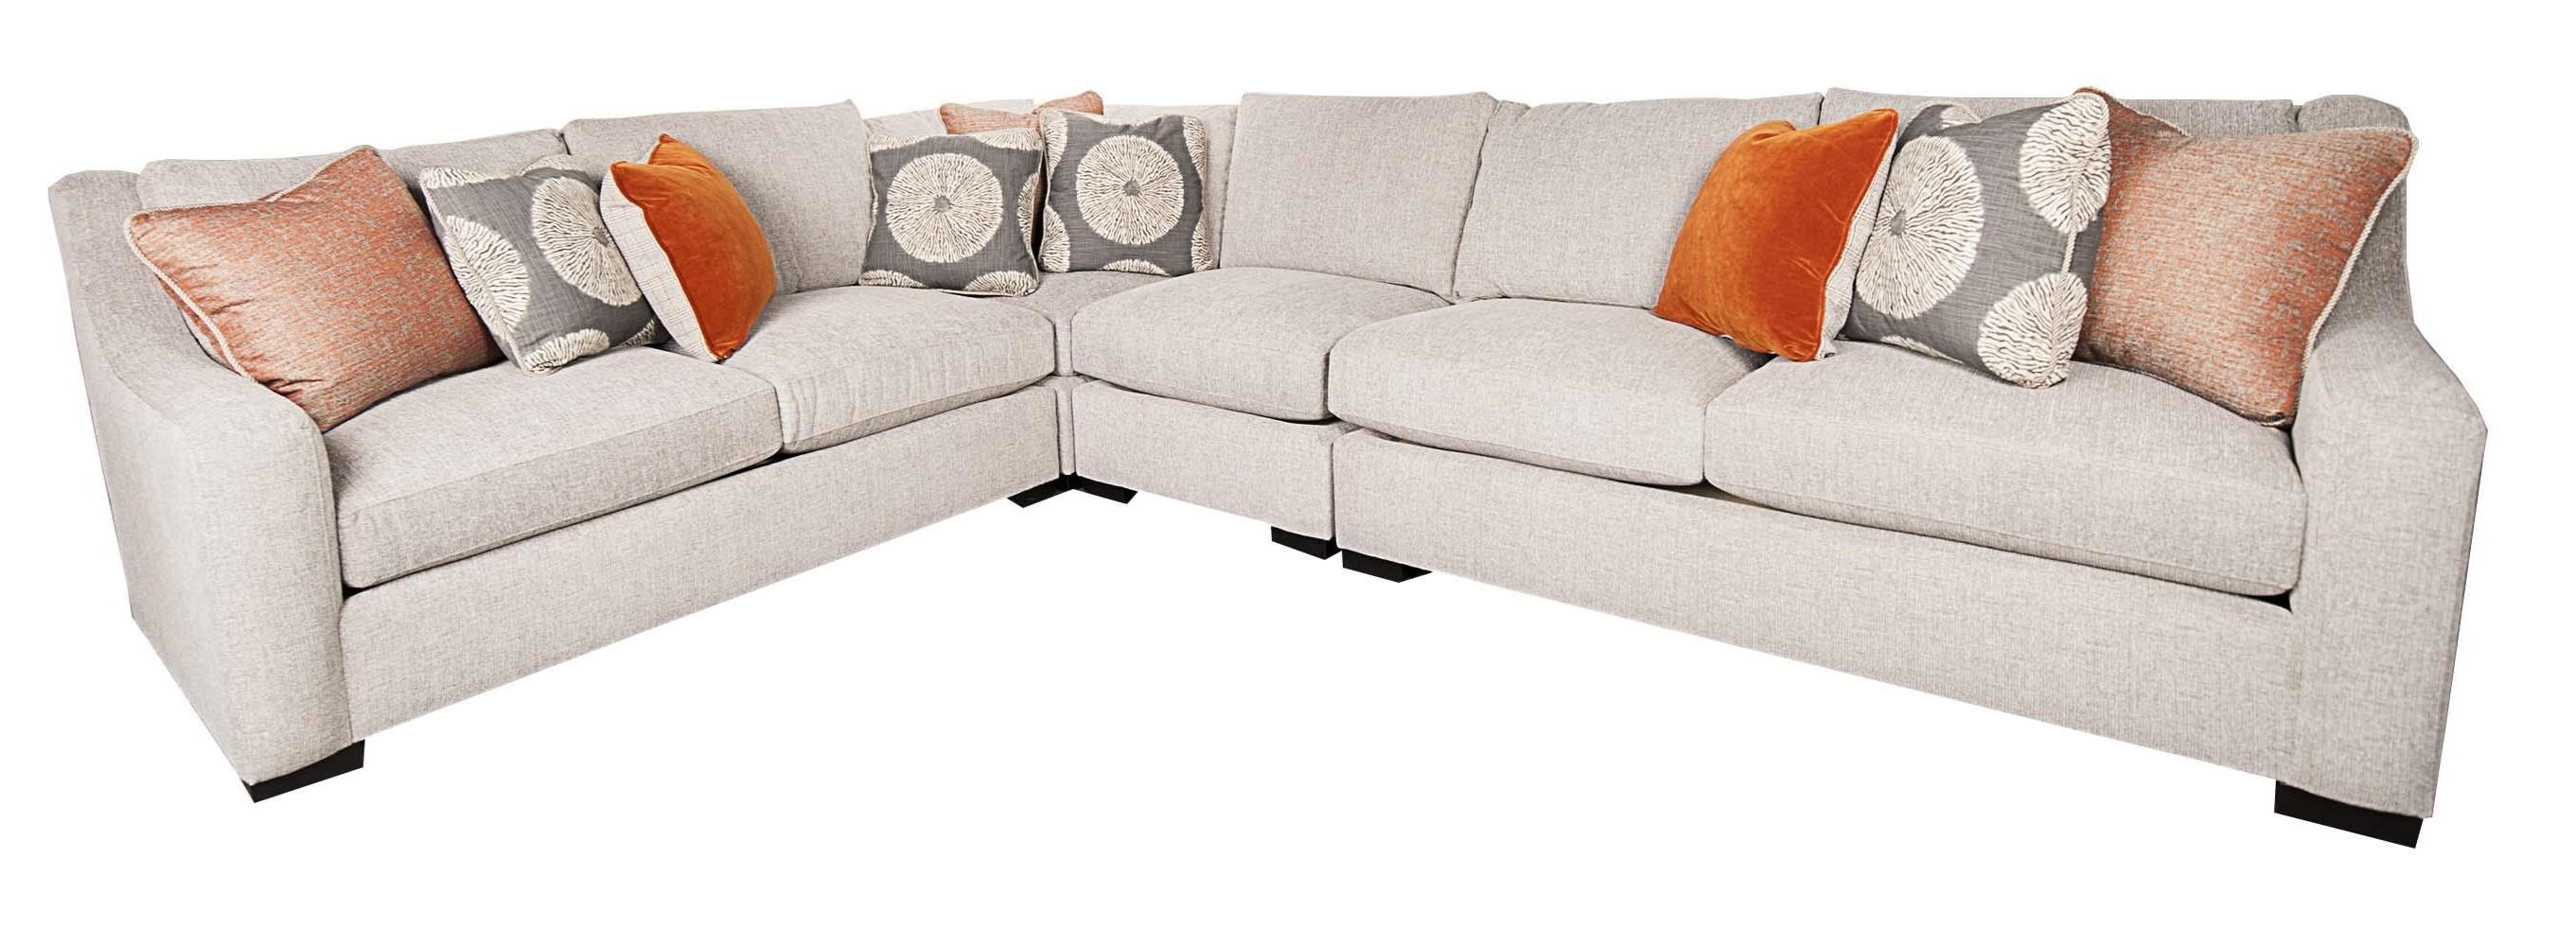 Bernhardt Germain 4 Piece Sectional (View 3 of 20)